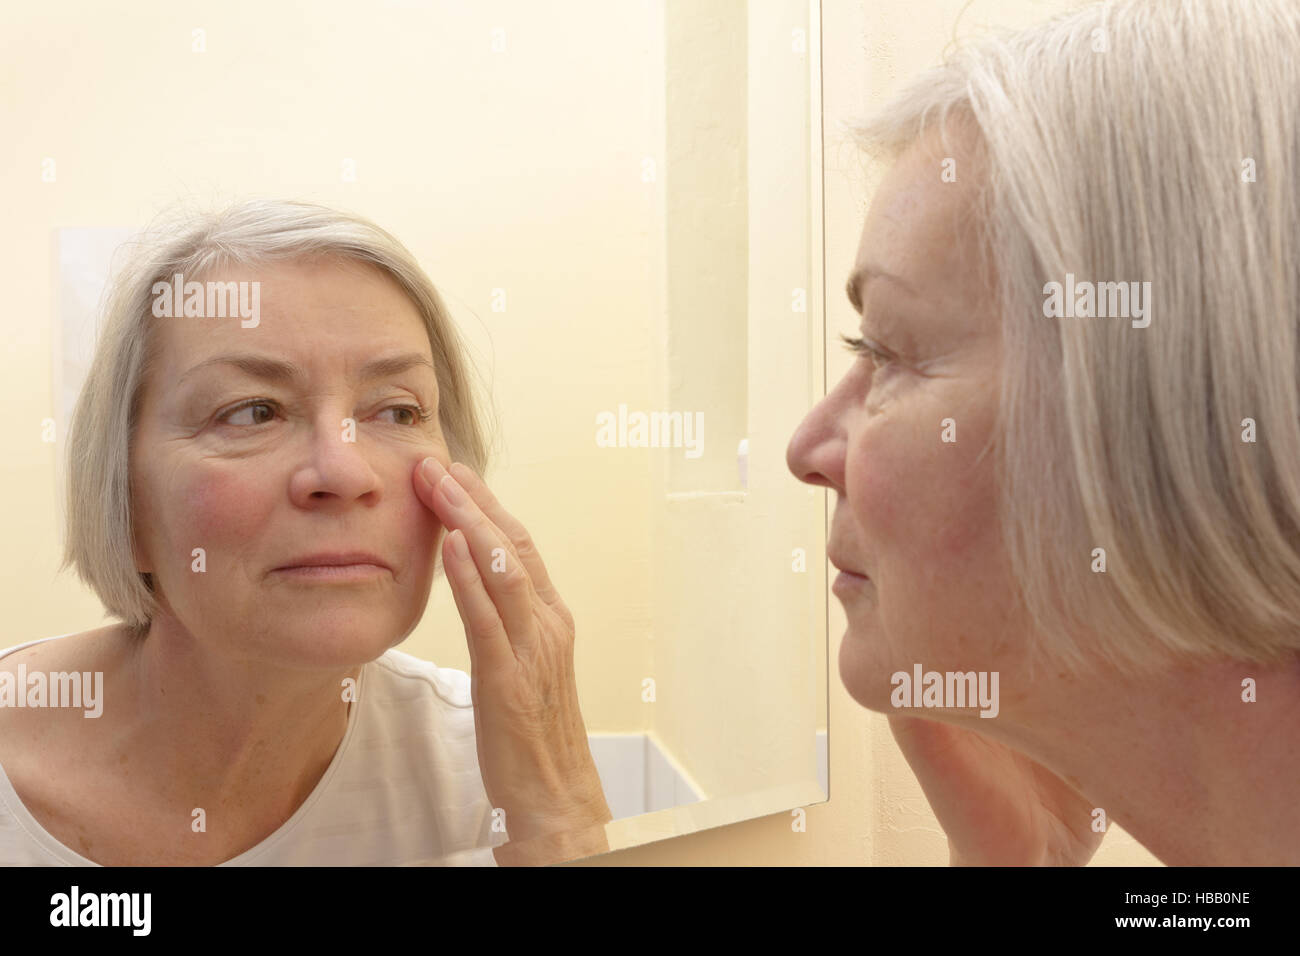 Senior woman with grey hair having a close look at the wrinkles of her facial skin in a mirror, thinking about esthetic - Stock Image